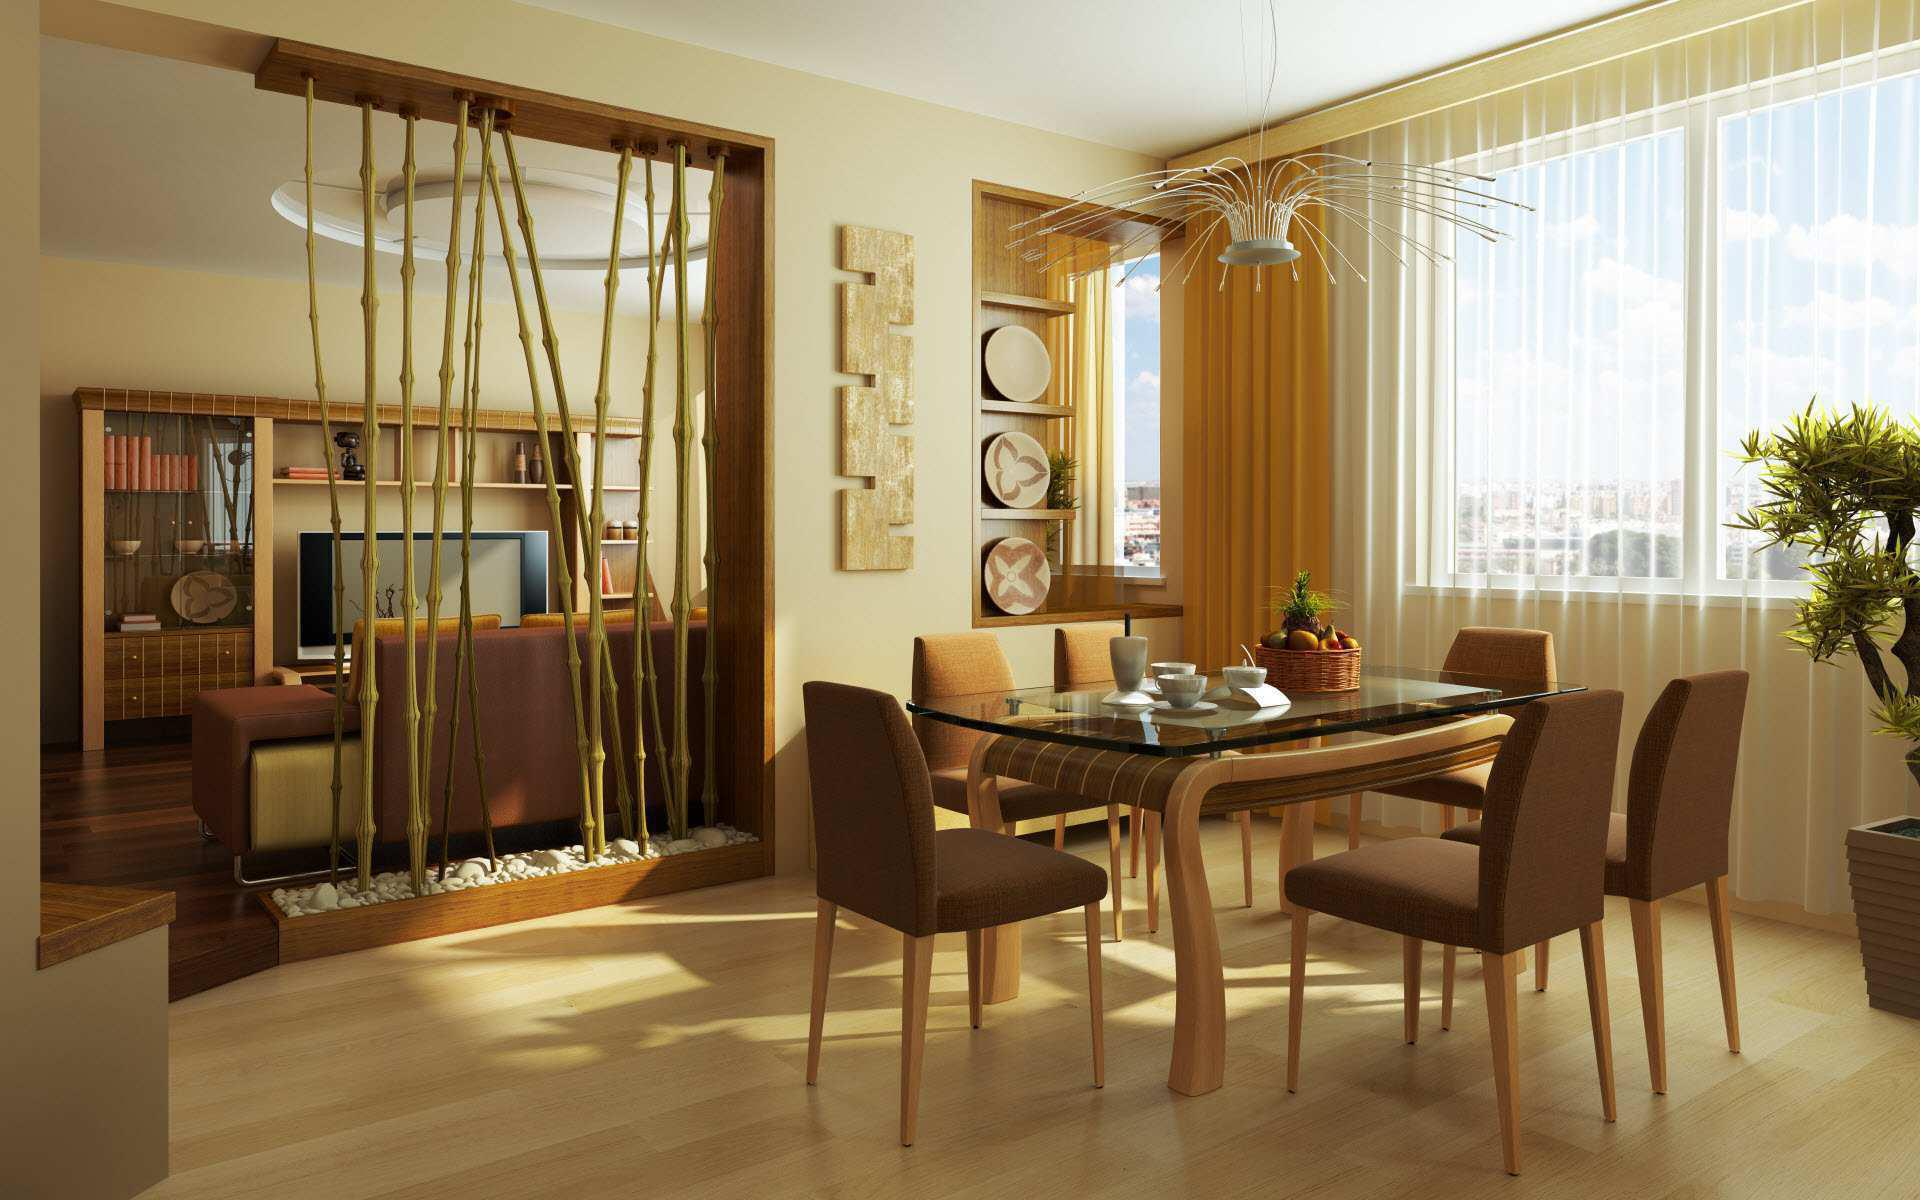 Image of: Dining Room Design Ideas On A Budget